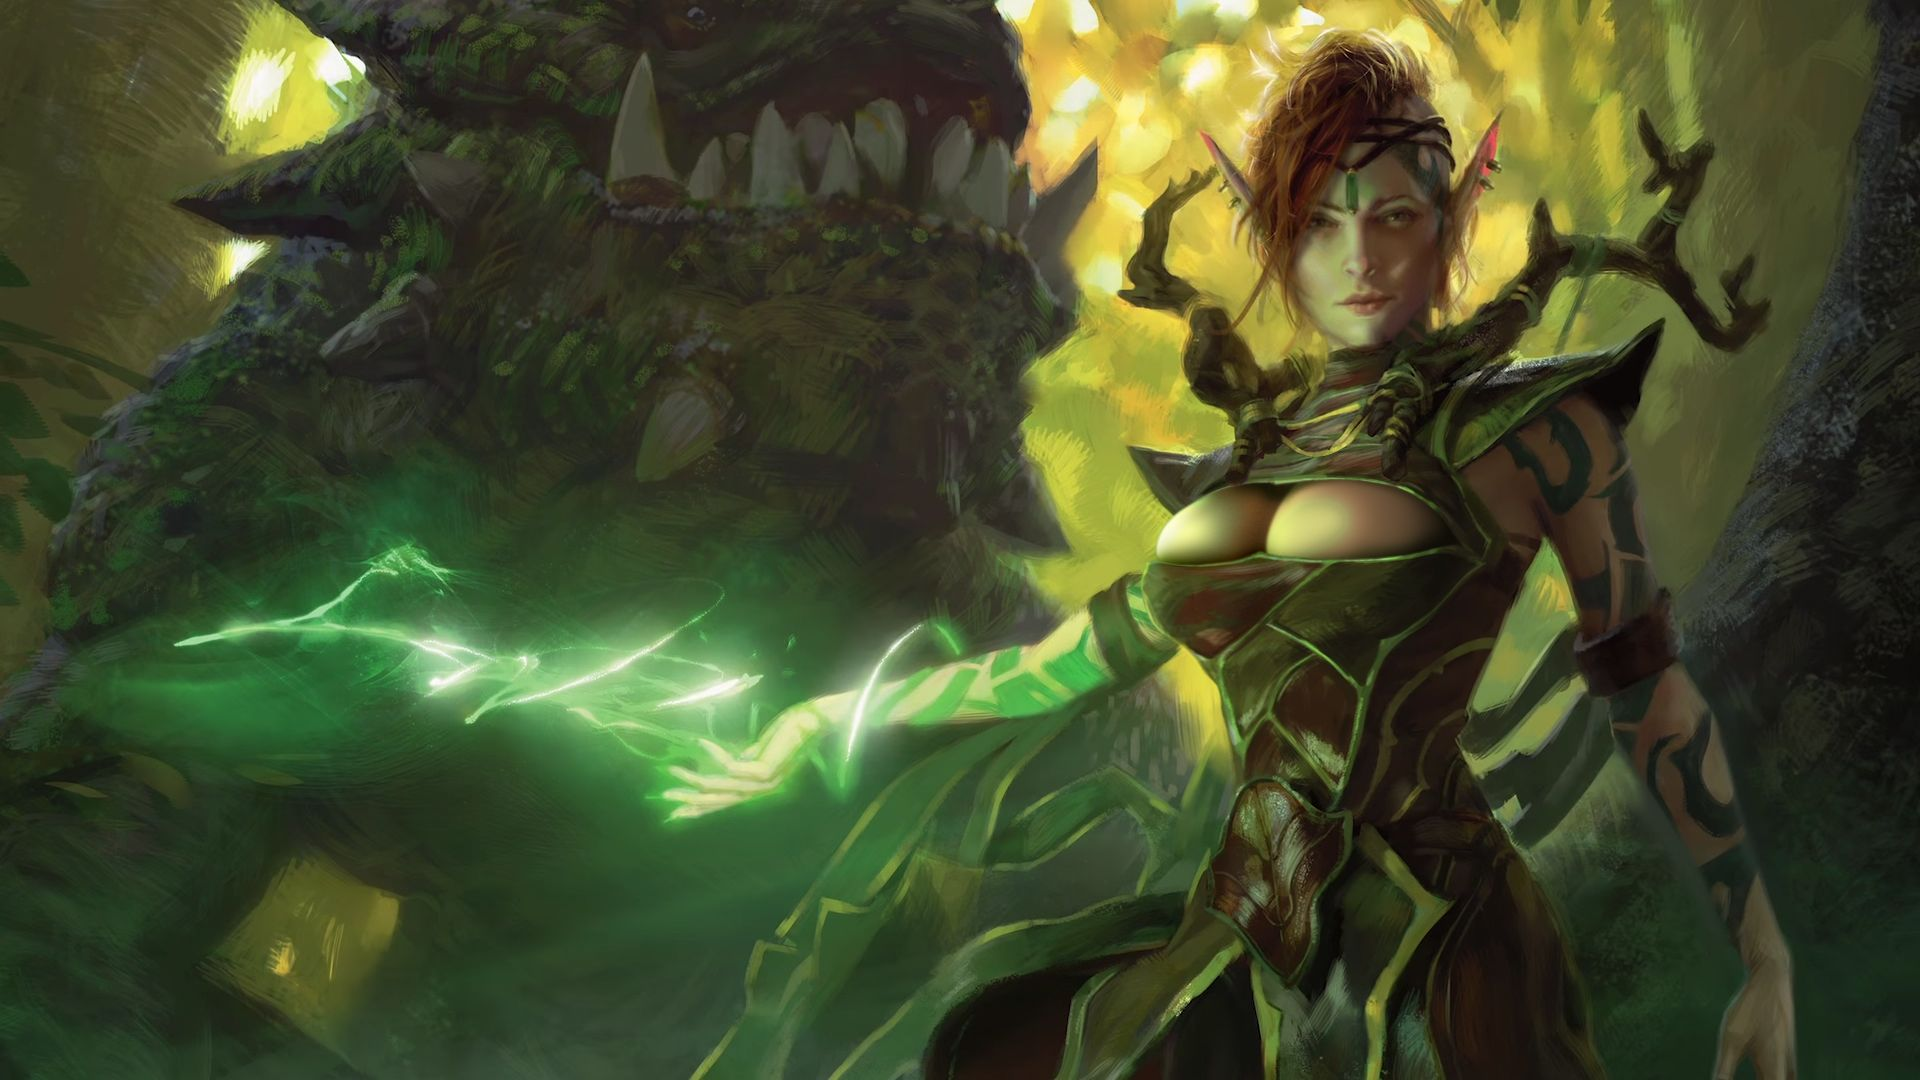 3D Magic Boobs elfhame druid (edit/alter) #mtg #magic_the_gathering mtg